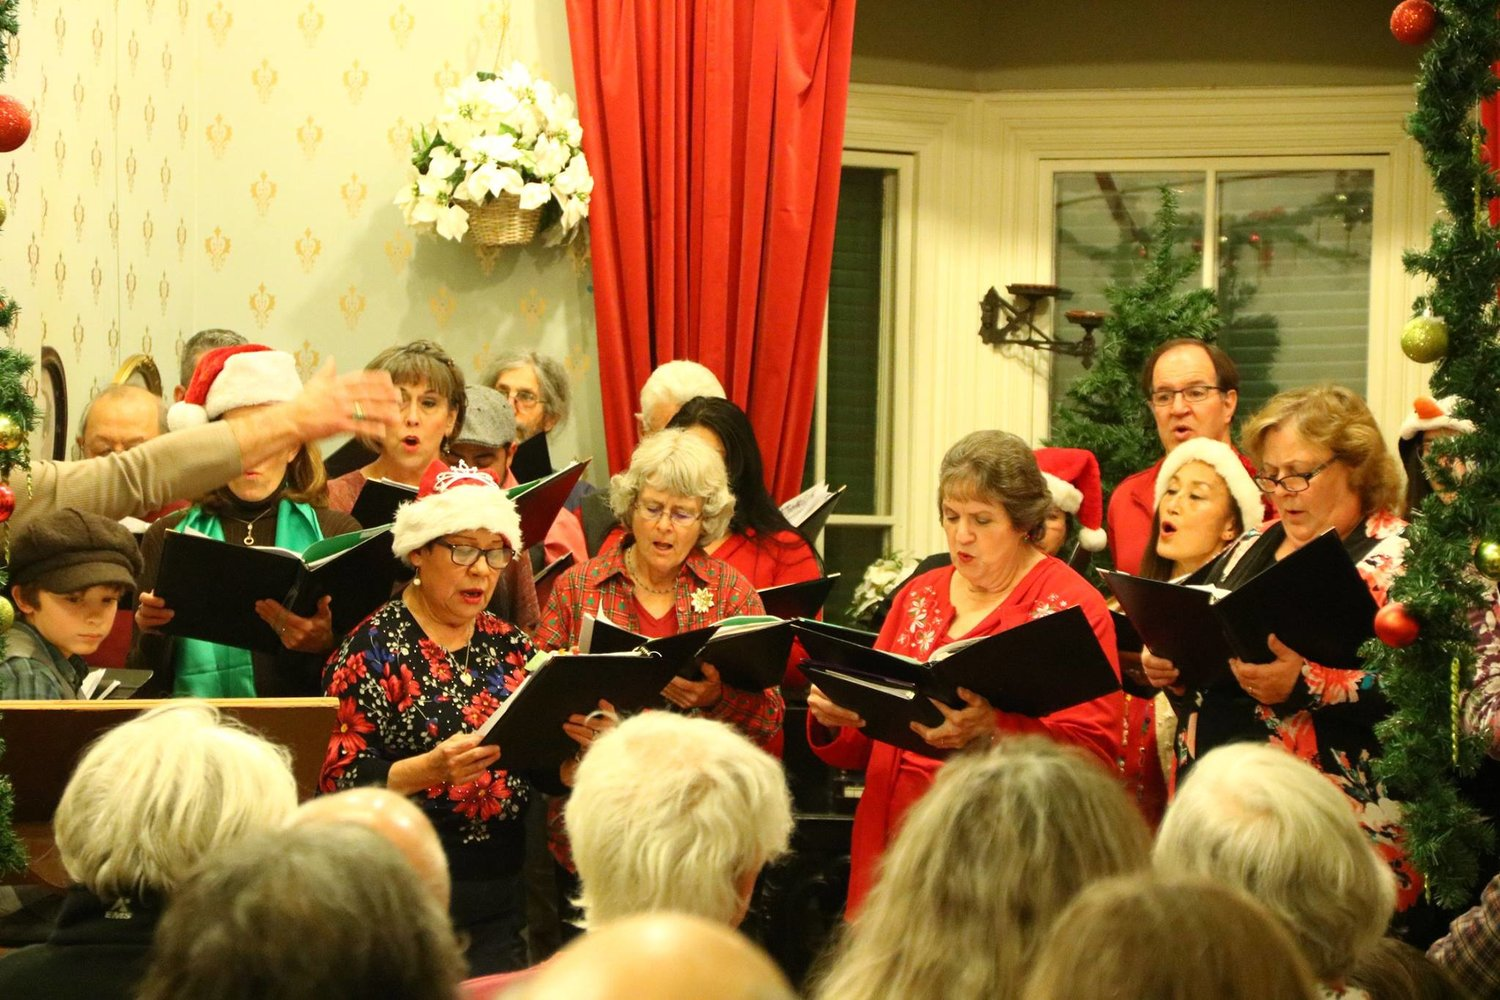 Caroling is just one of the entertainments st the Victorian Christmas hosted by the Silver City Museum on Dec. 12.